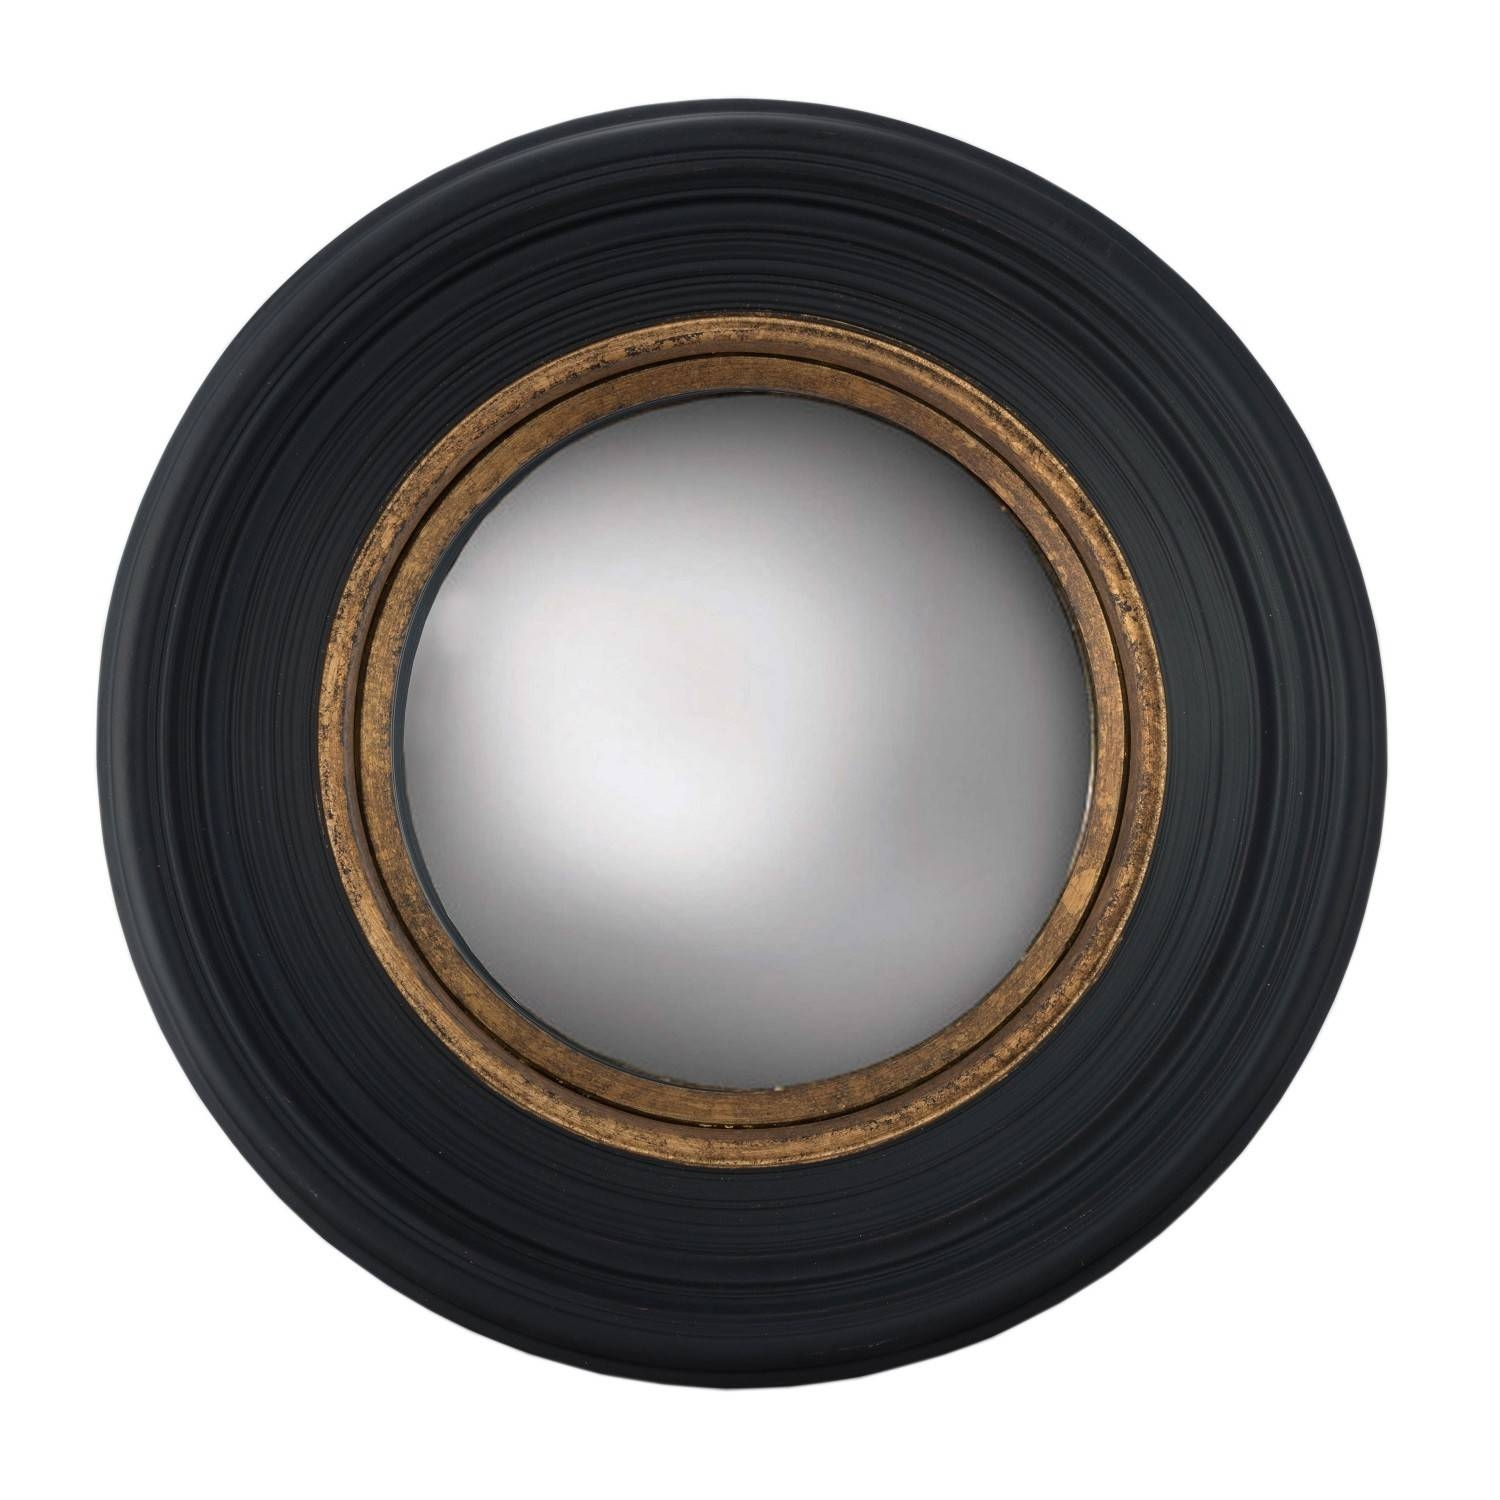 Fitzroy Convex Mirror - Black - India Jane within Black Convex Mirrors (Image 7 of 25)